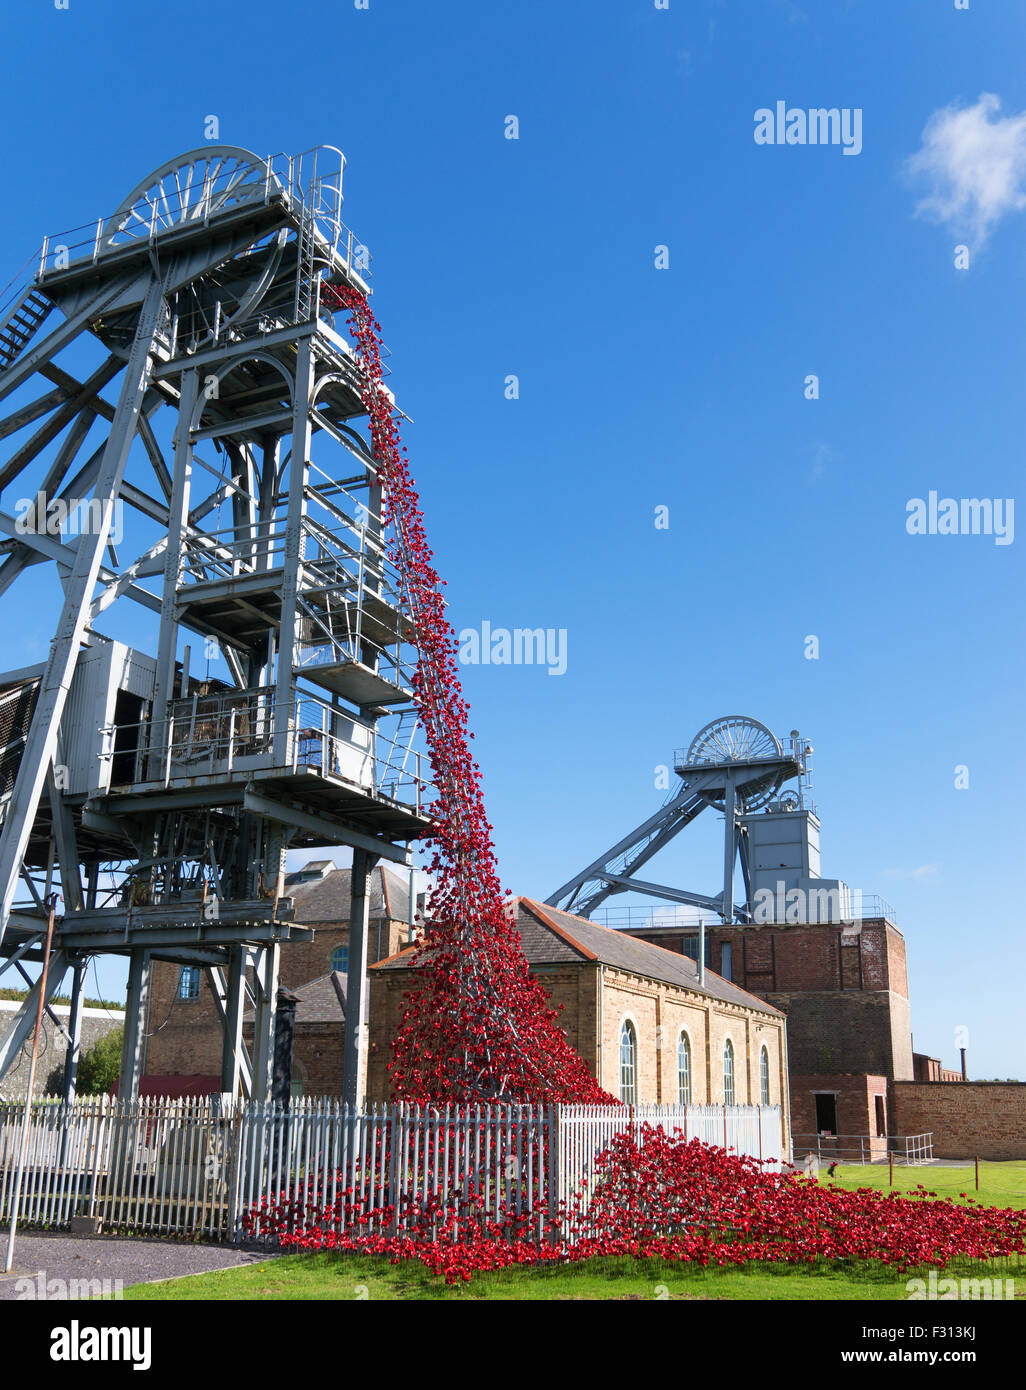 Weeping Window using ceramic poppies by Paul Cummins and Tom Piper,  Woodhorn Colliery, Ashington, Northumberland, - Stock Image